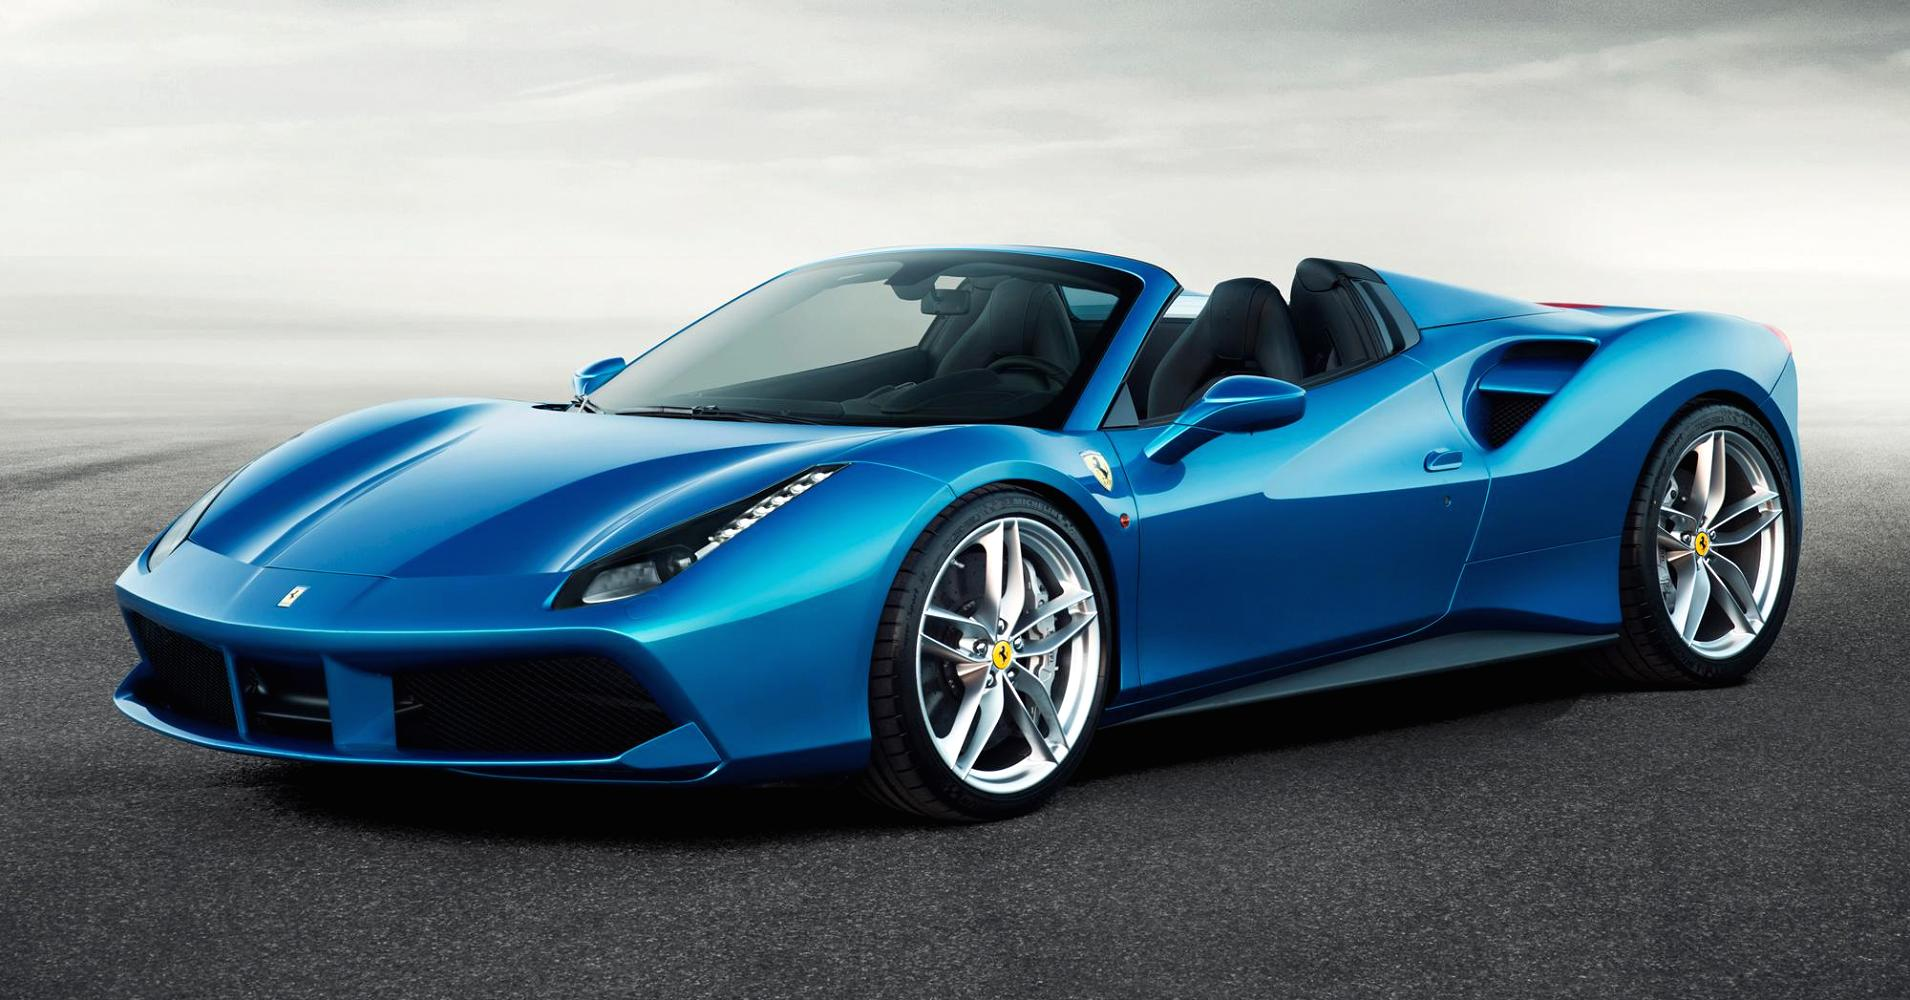 Ferrari valued at up to $9 8 billion in U S  IPO, Fiat Chrysler to